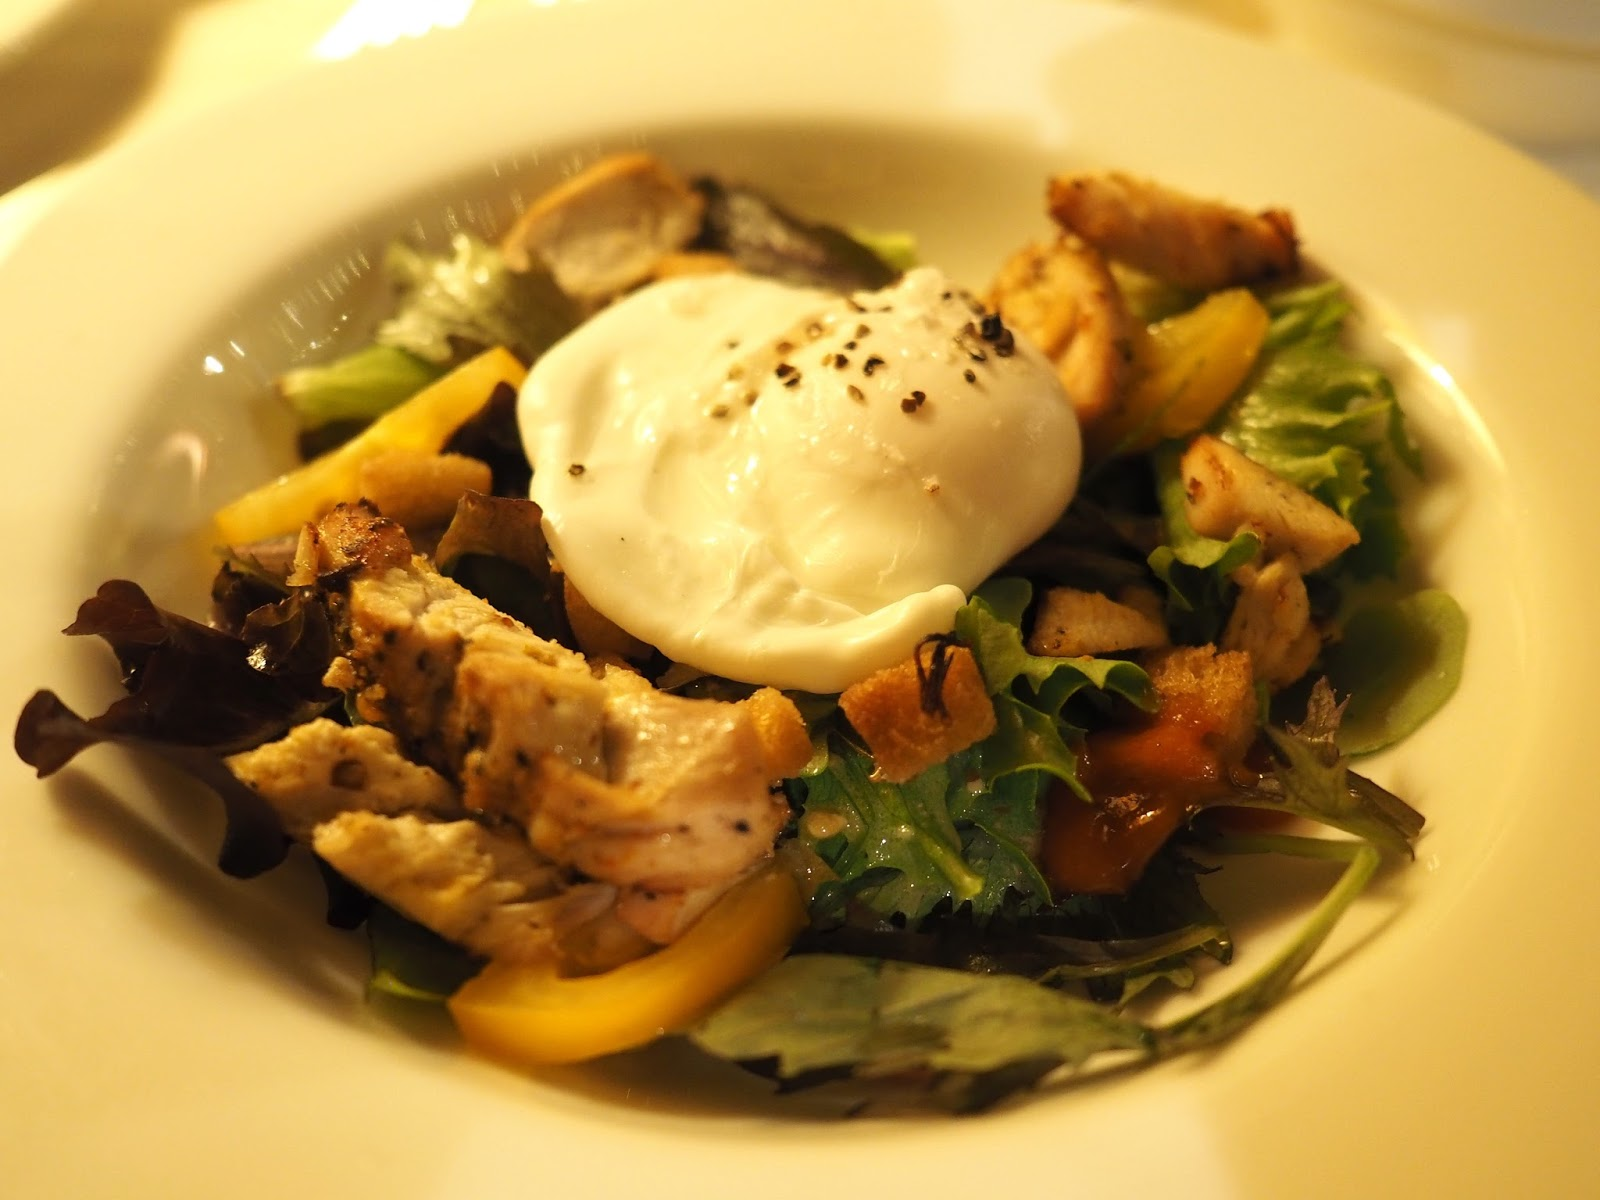 Spicy chicken, dressed salad and poached egg at Le Caveau, excellent French restaurant in Skipton, North Yorkshire